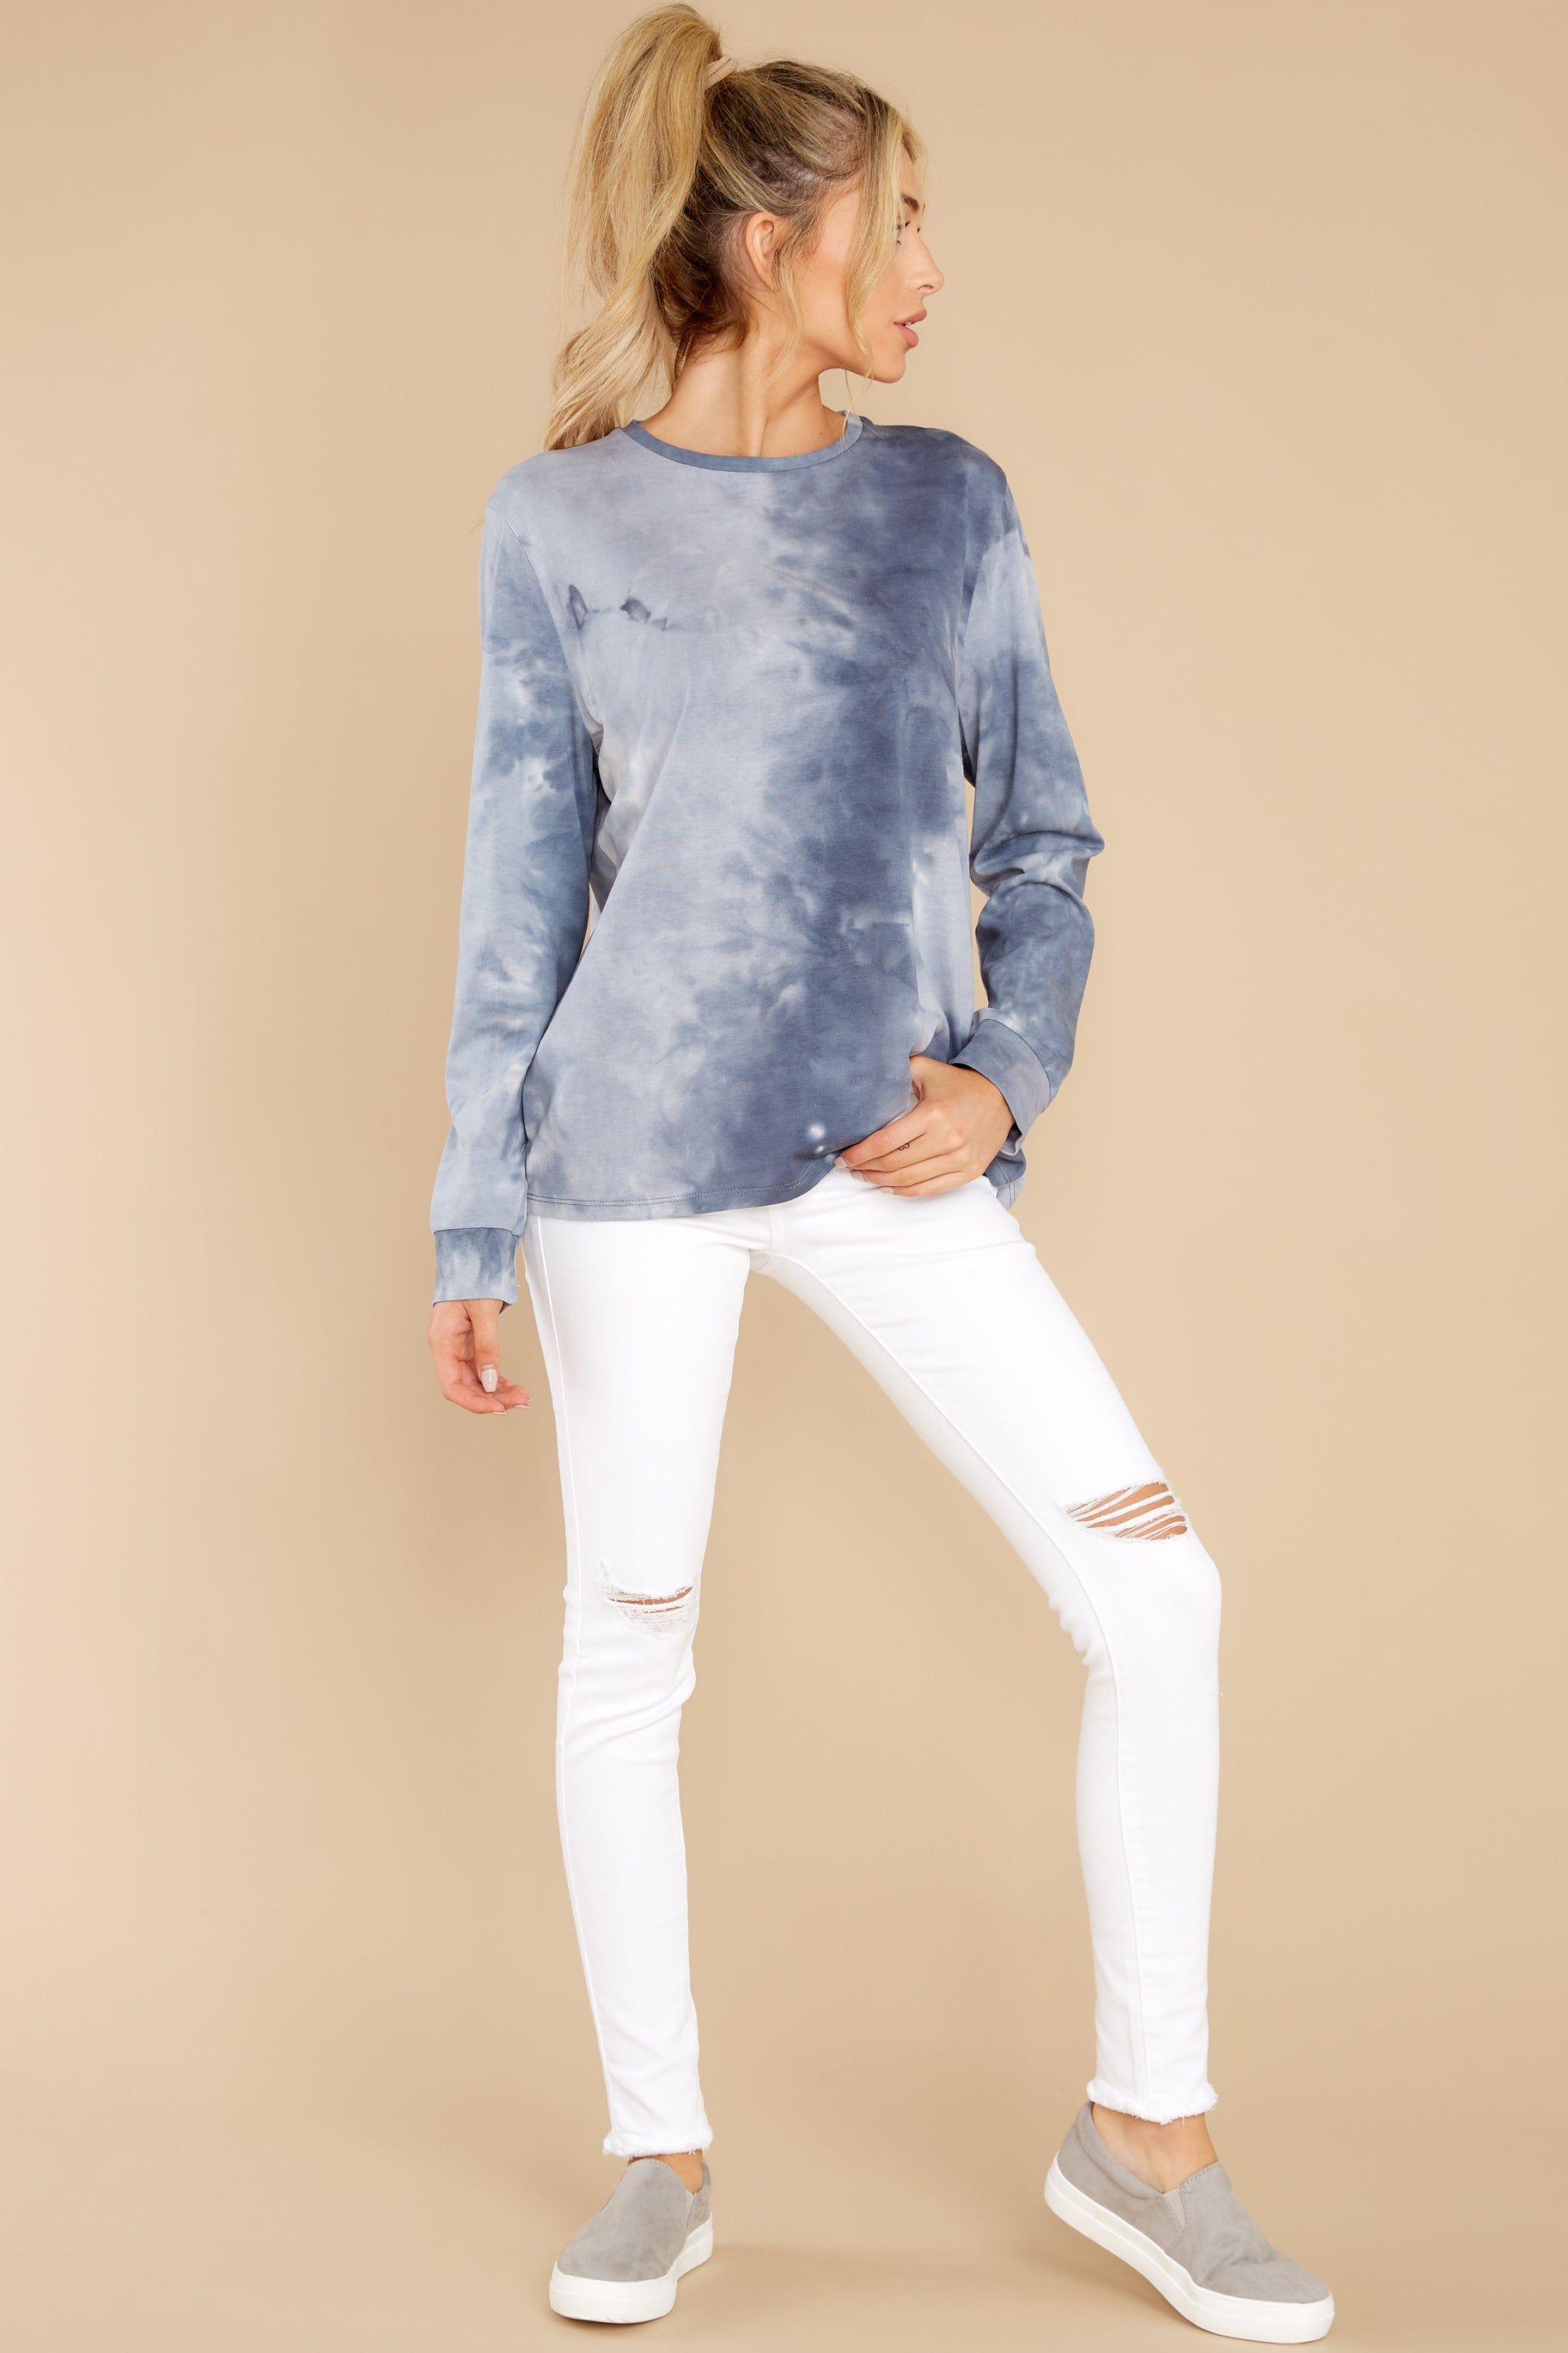 6 On Your Mind Slate Blue Tie Dye Top at reddress.com